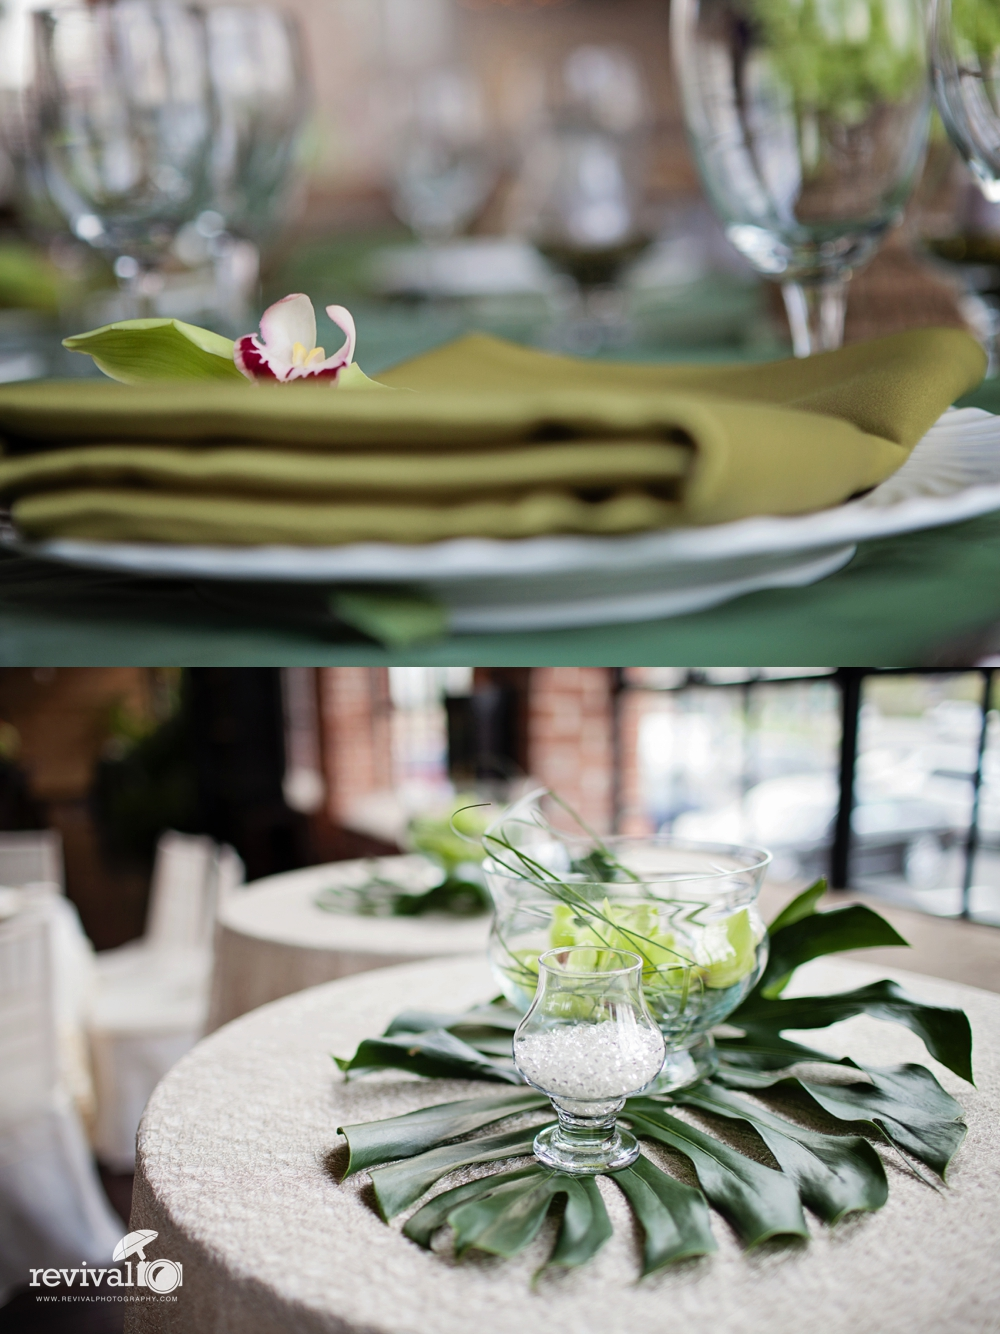 Centerpieces for weddings earthy green centerpieces Photo by Revival Photography www.revivalphotography.com